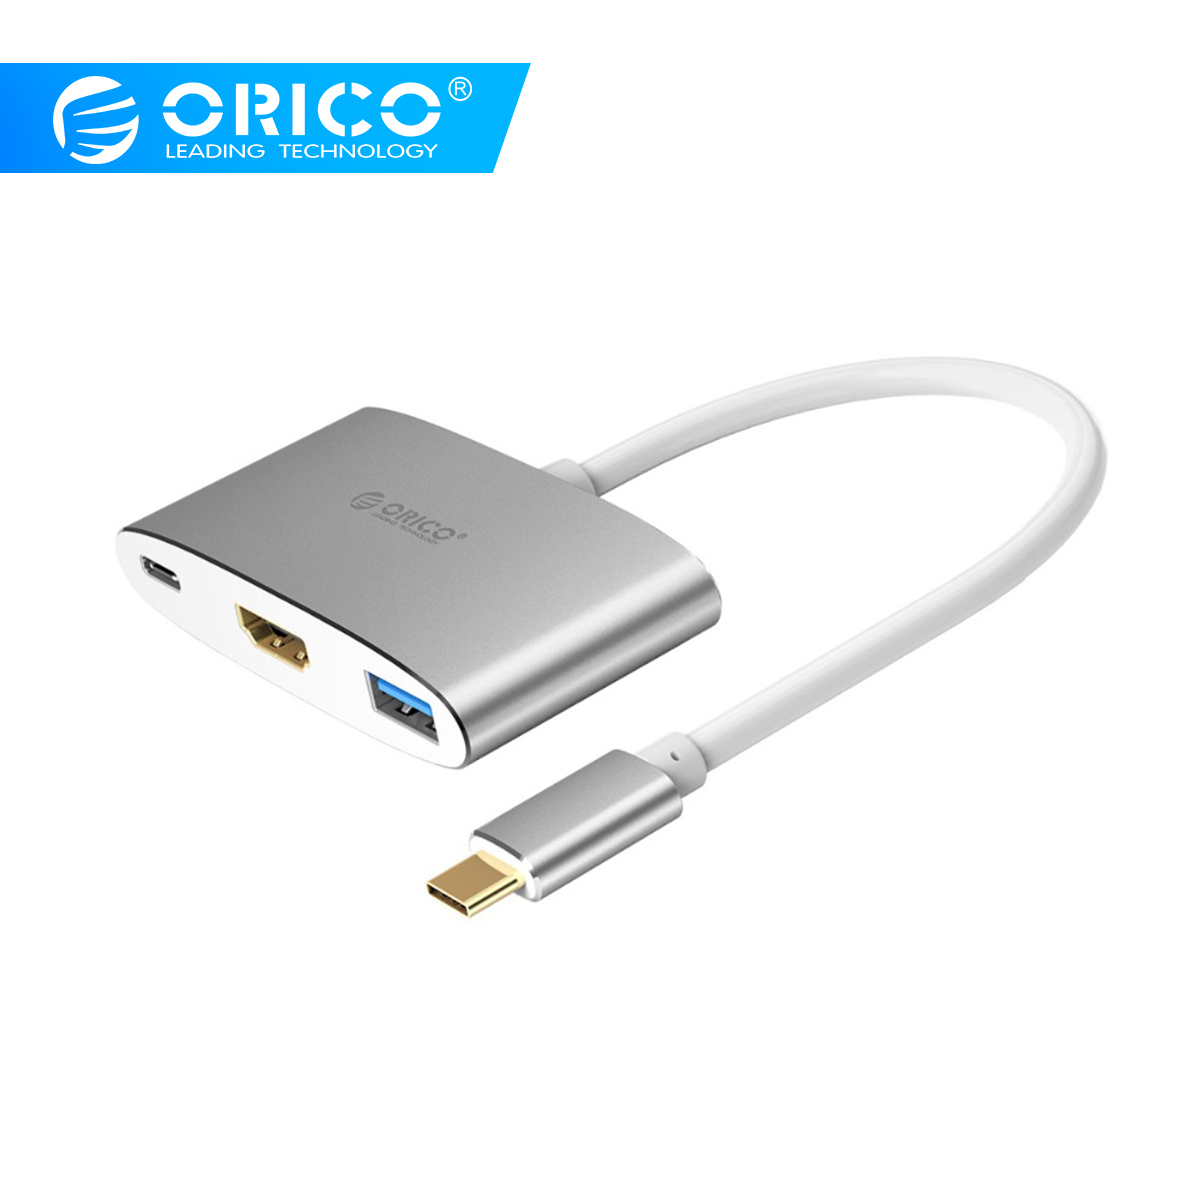 ORICO USB C HUB Type C To HDMI USB 3 0 Adapter 4K 1080P 5Gbps for